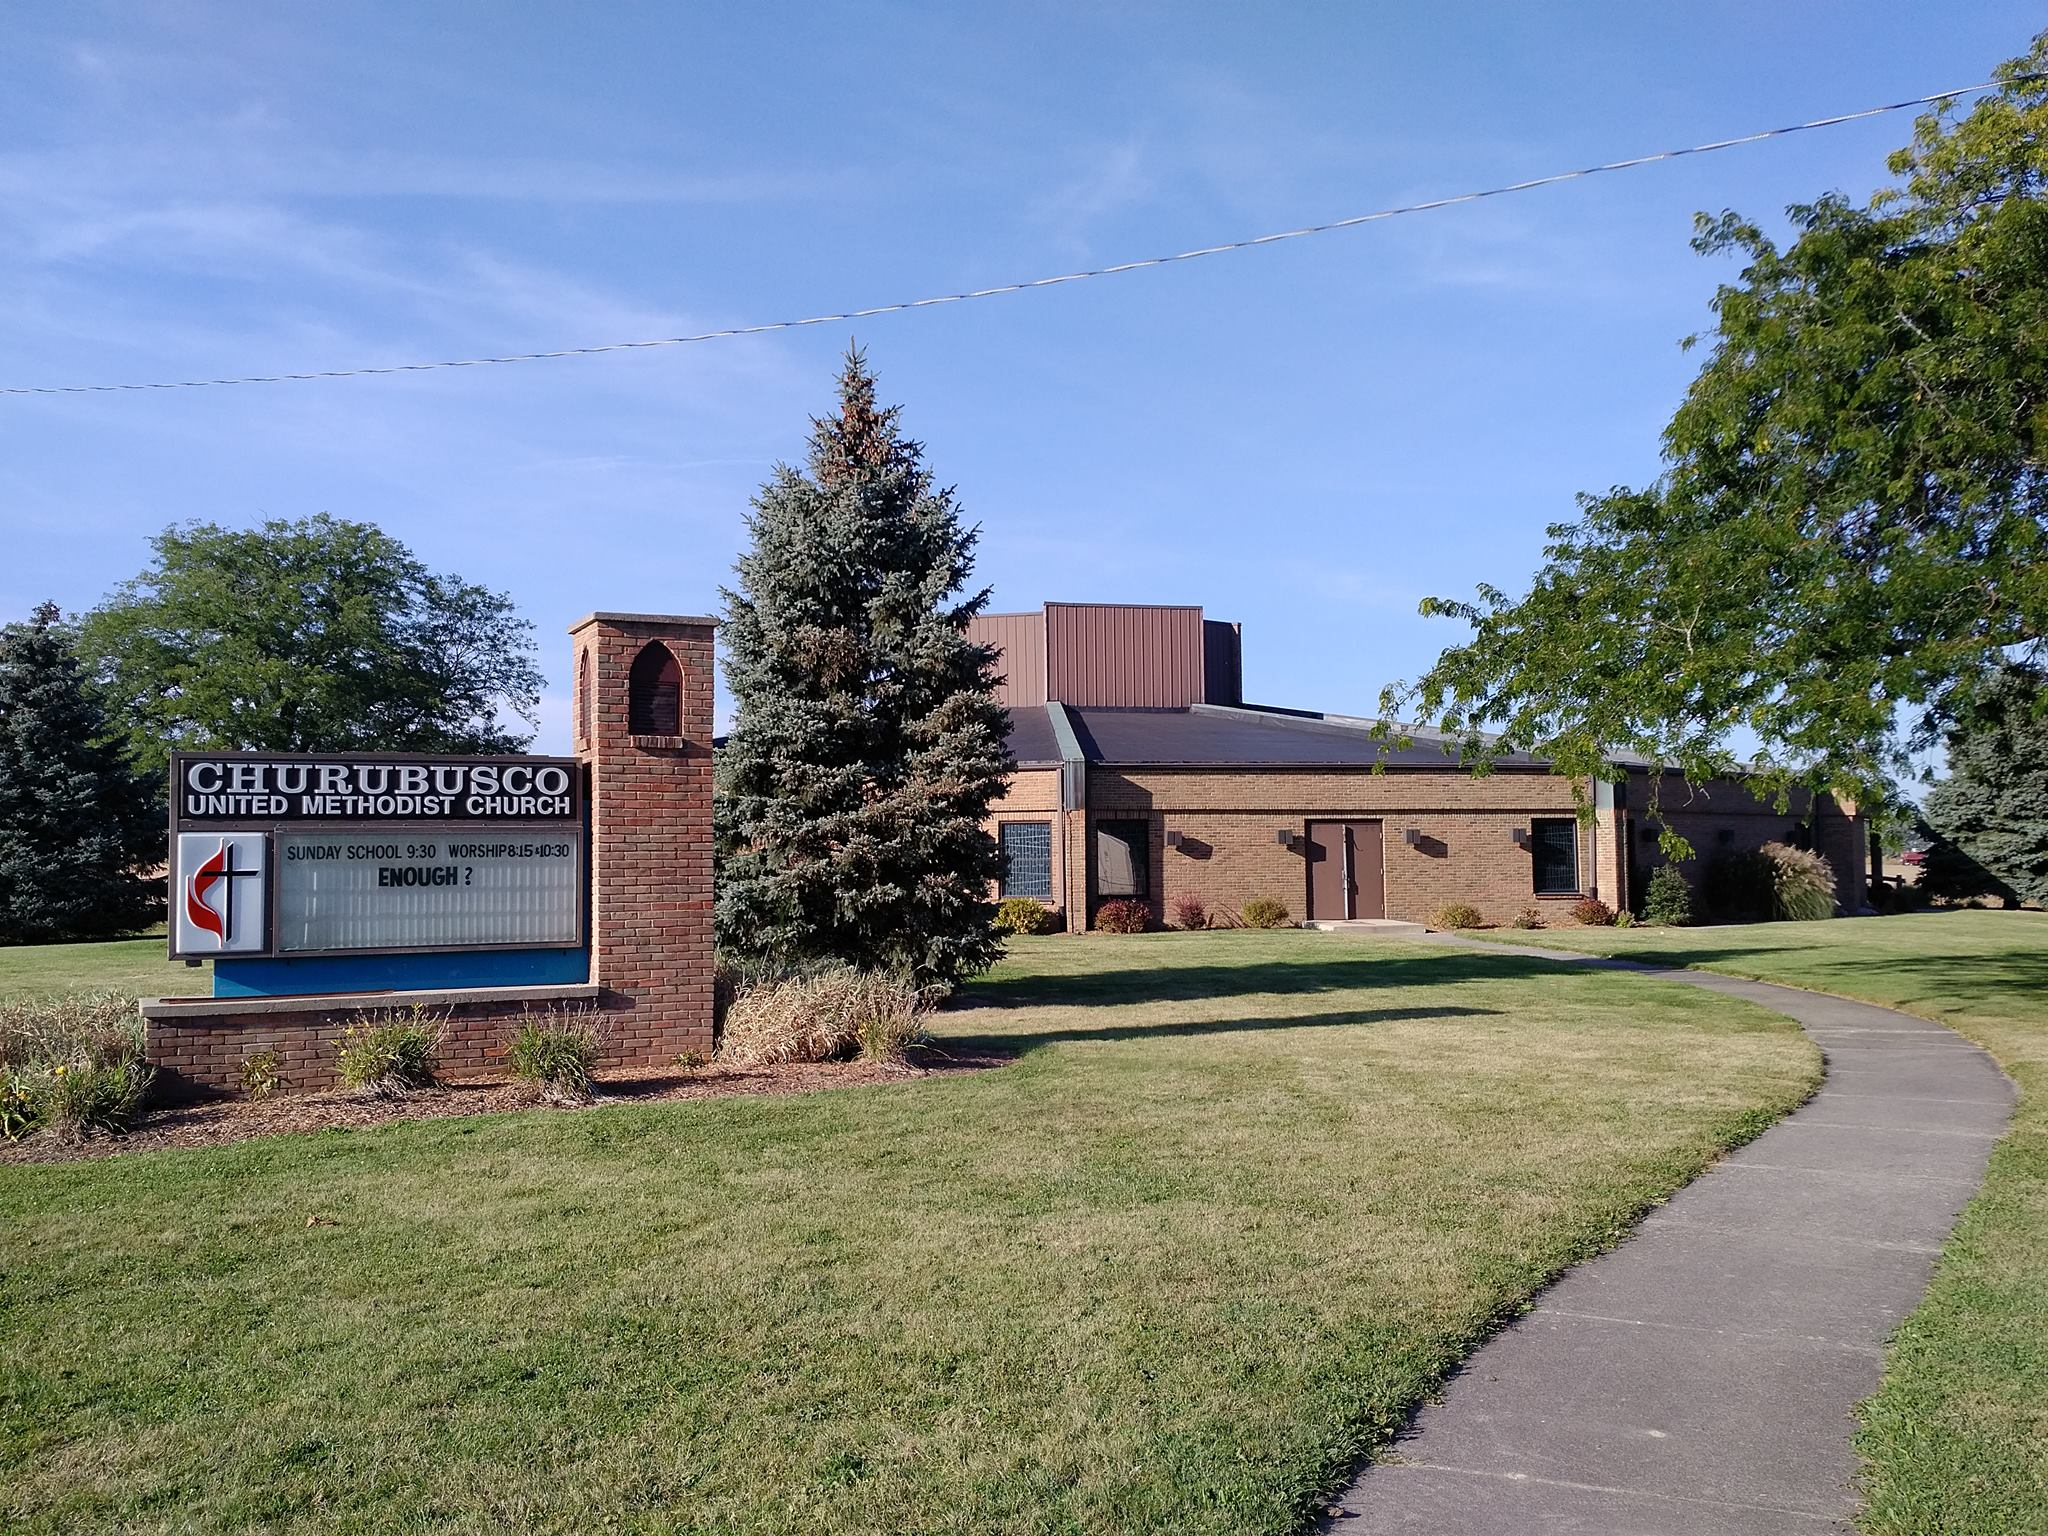 Churubusco United Methodist Church